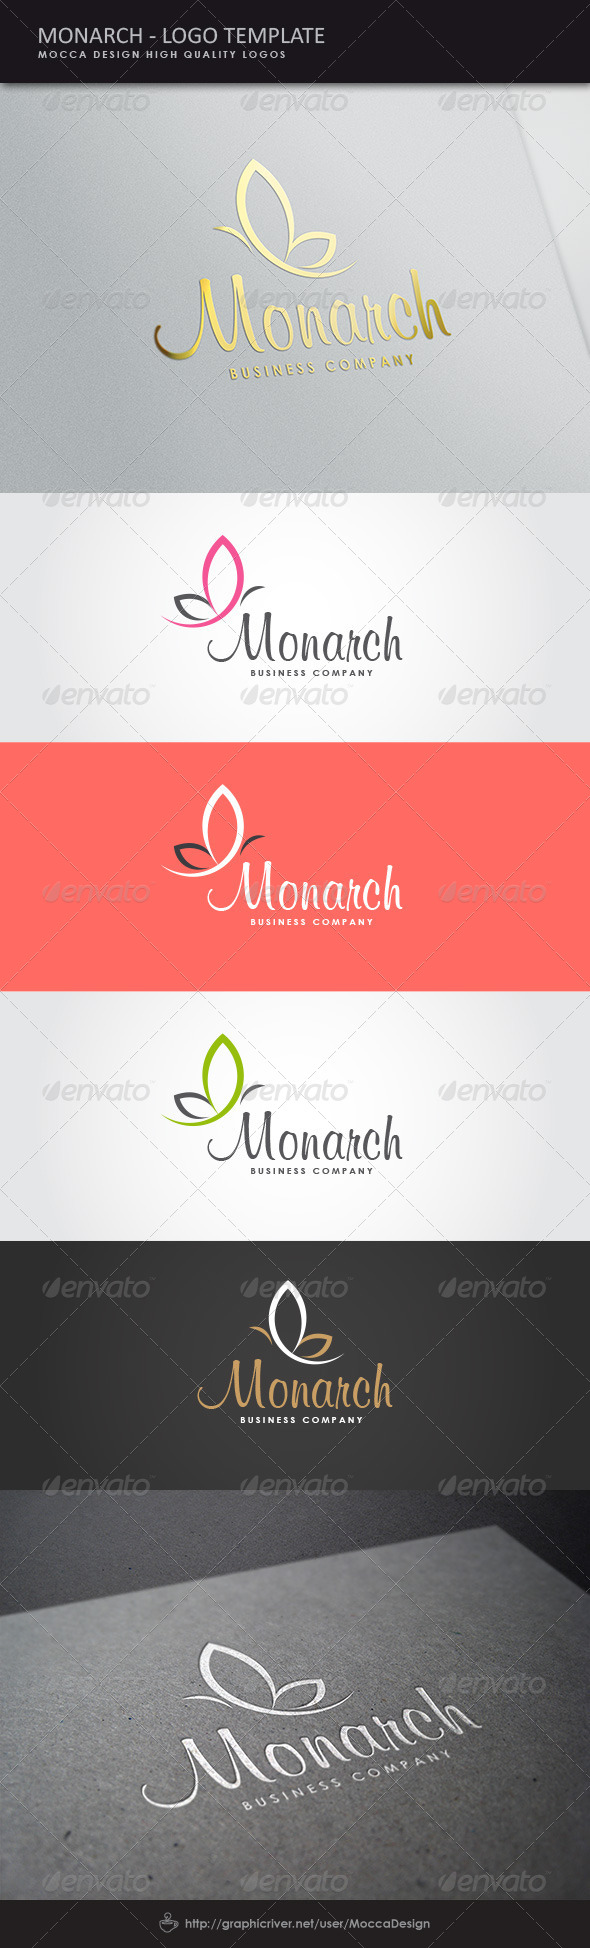 GraphicRiver Monarch Logo 8524630